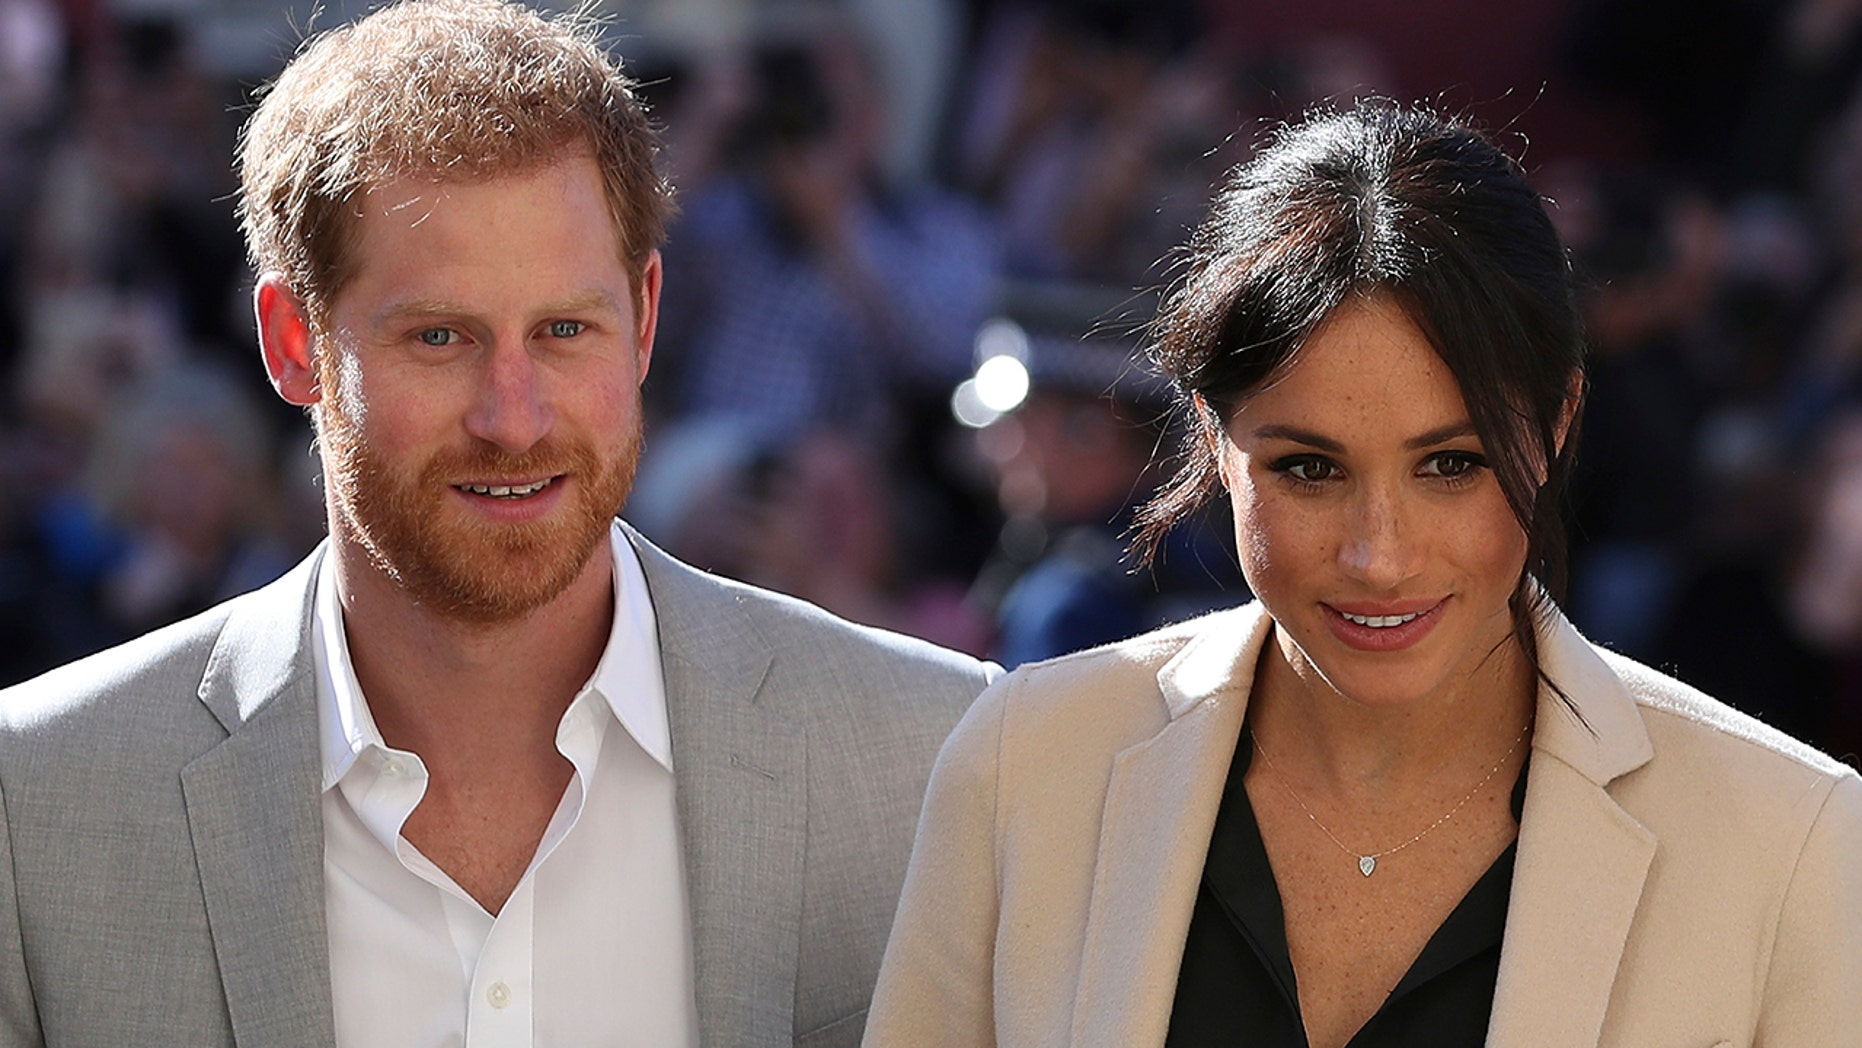 Maranui Café excited to host Prince Harry and Meghan